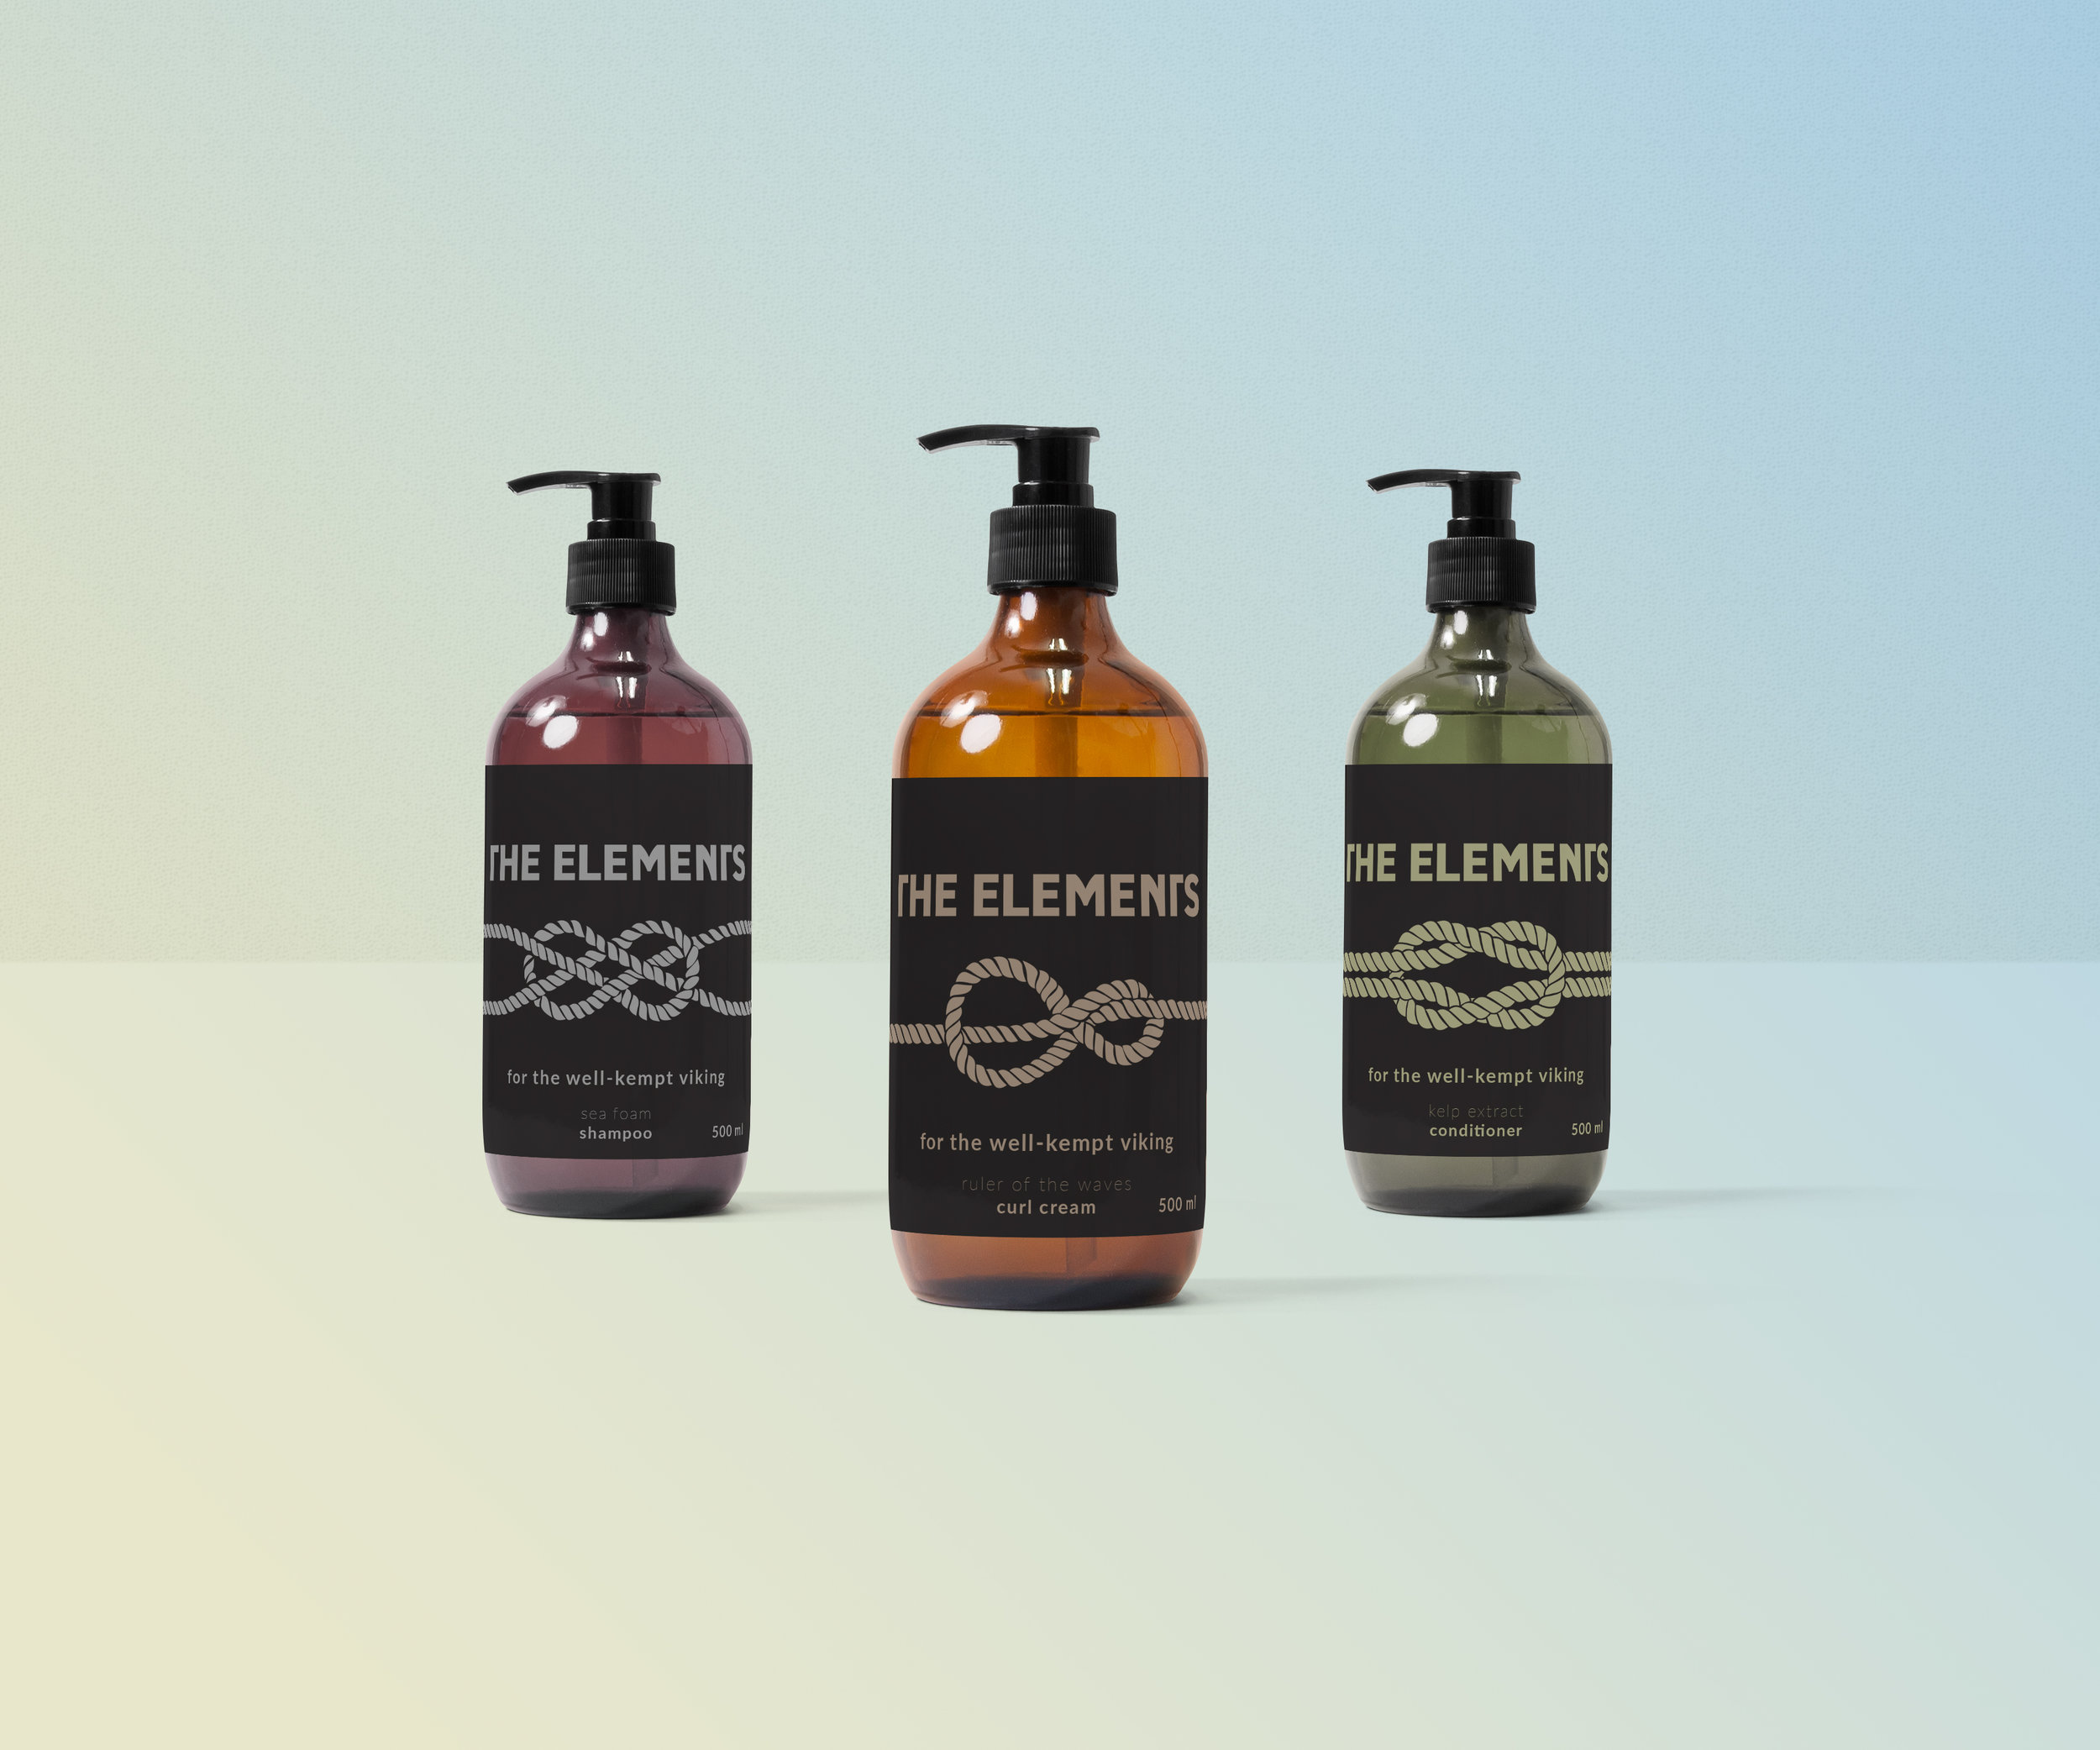 02 Dispenser Bottle PSD Mockup1.jpg